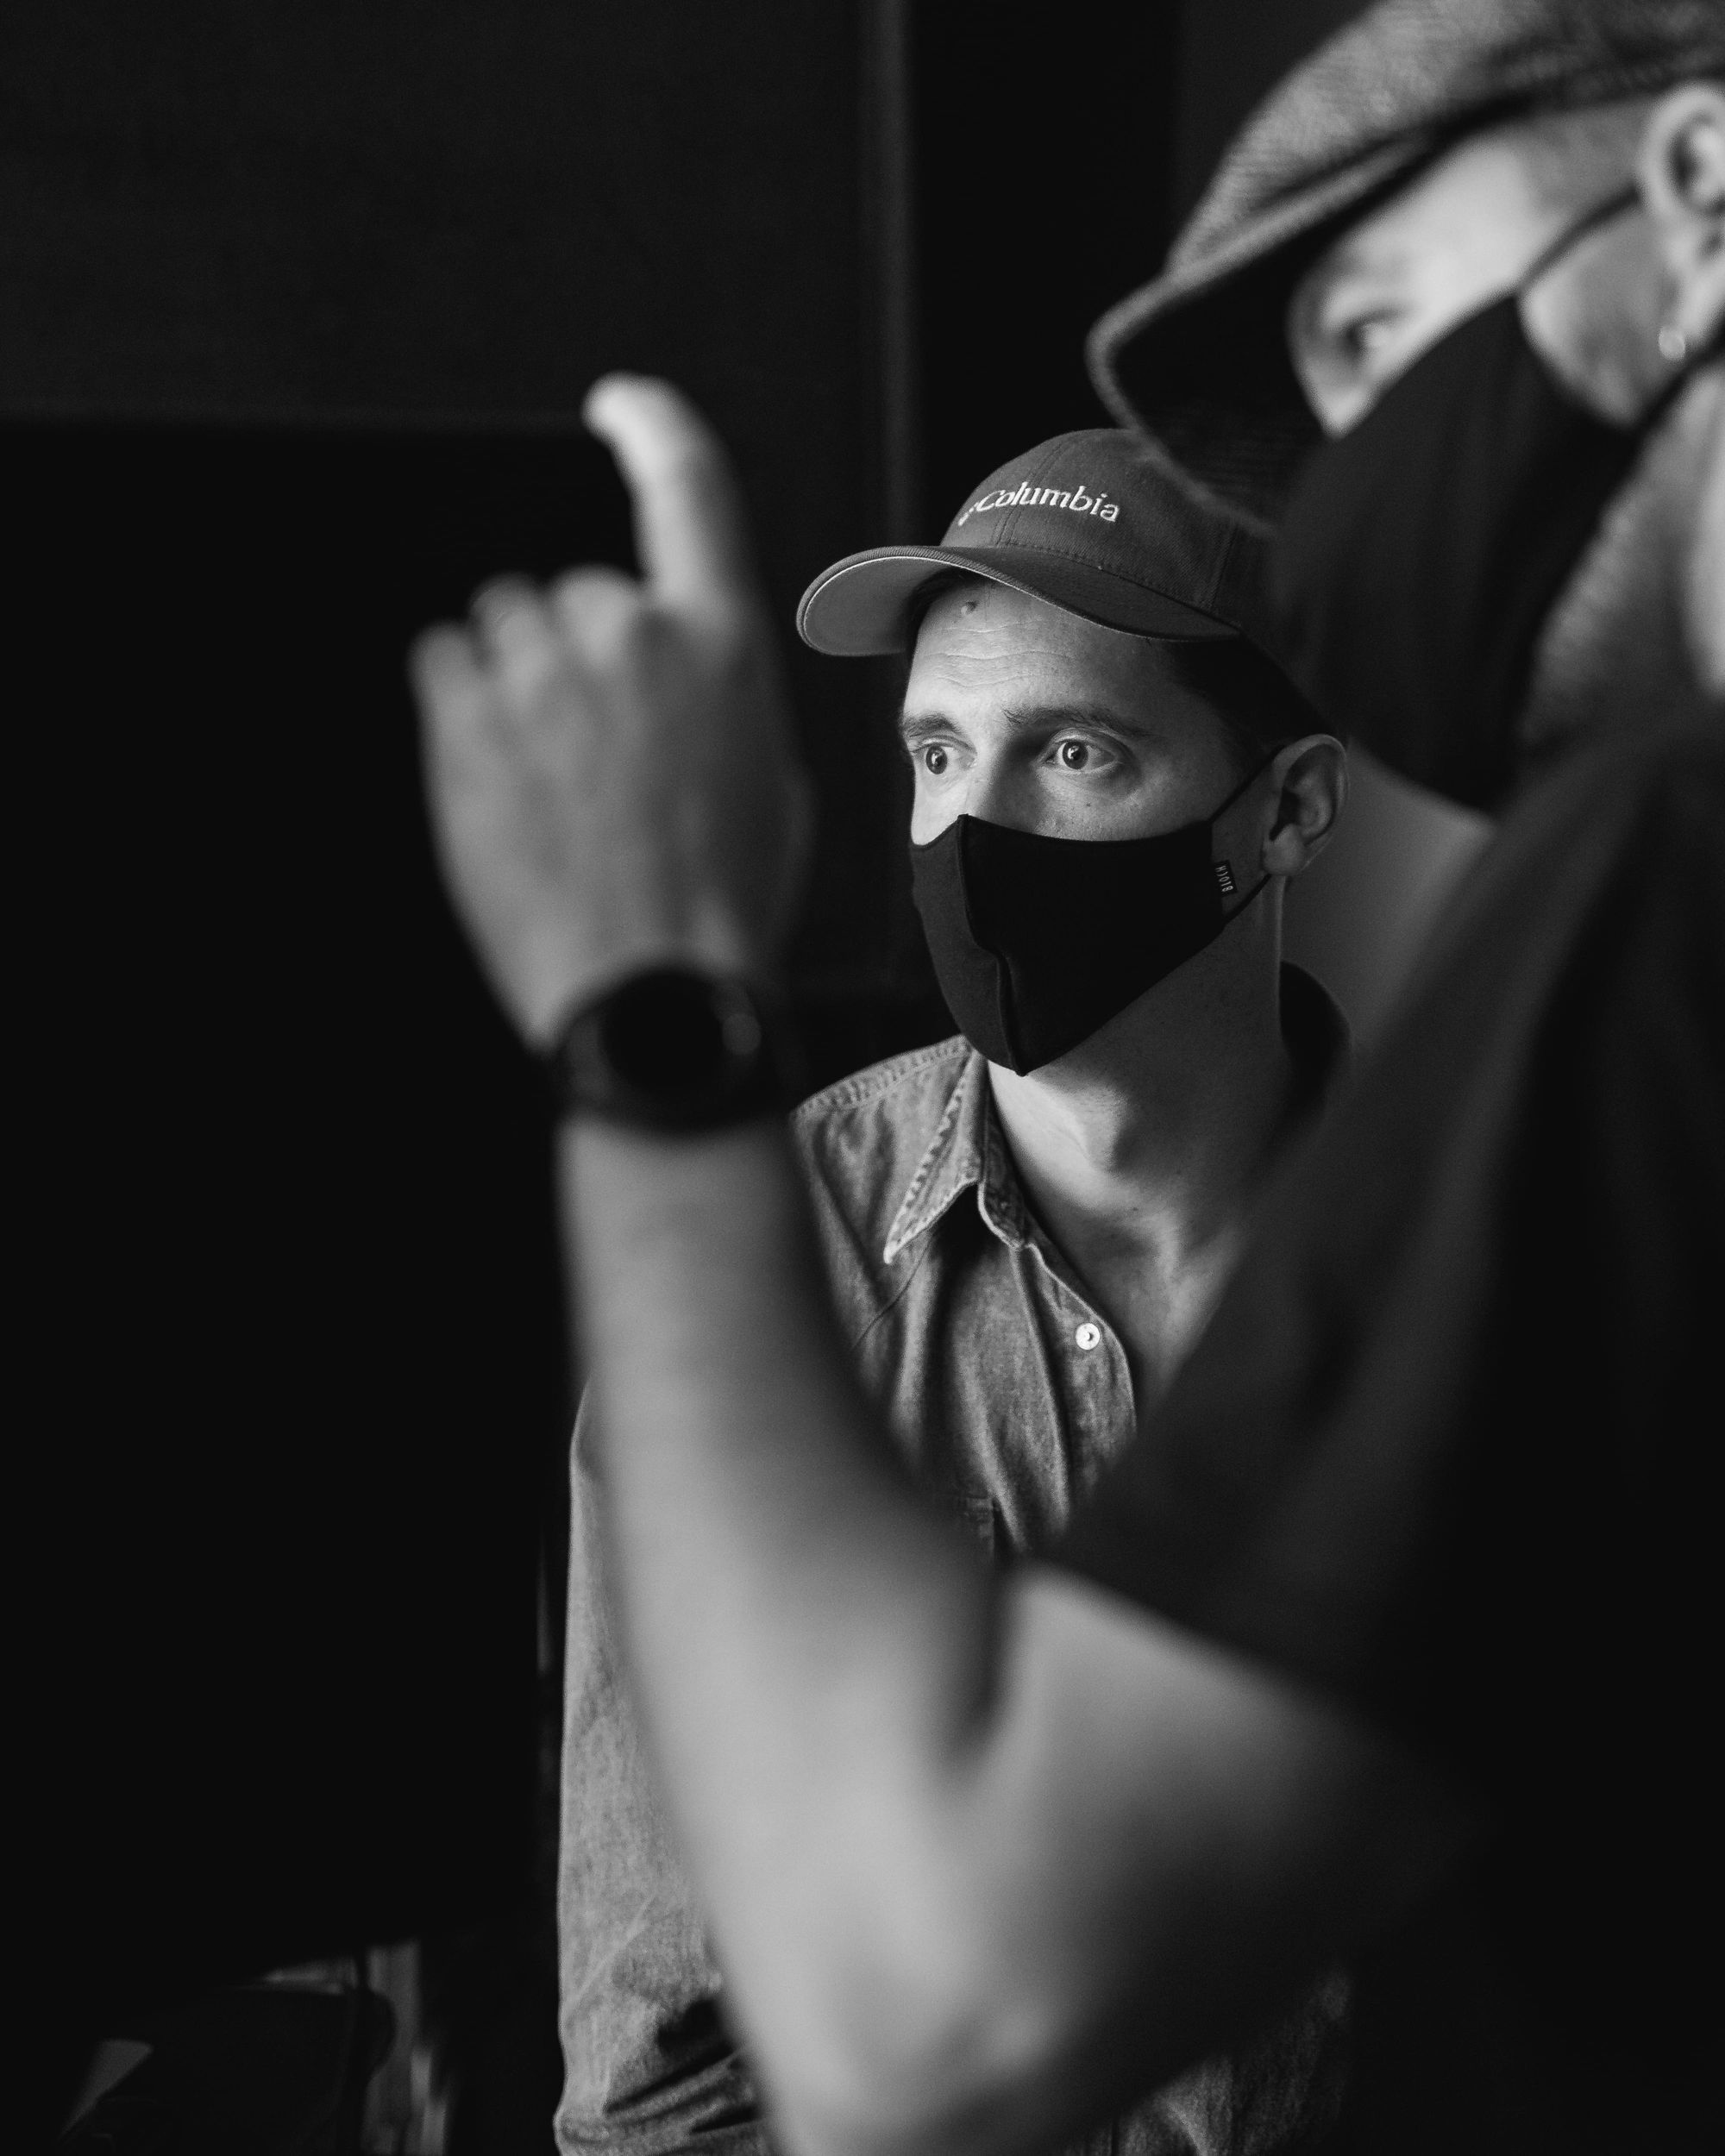 Tom Andrews talks: How to become a filmmaker without film school